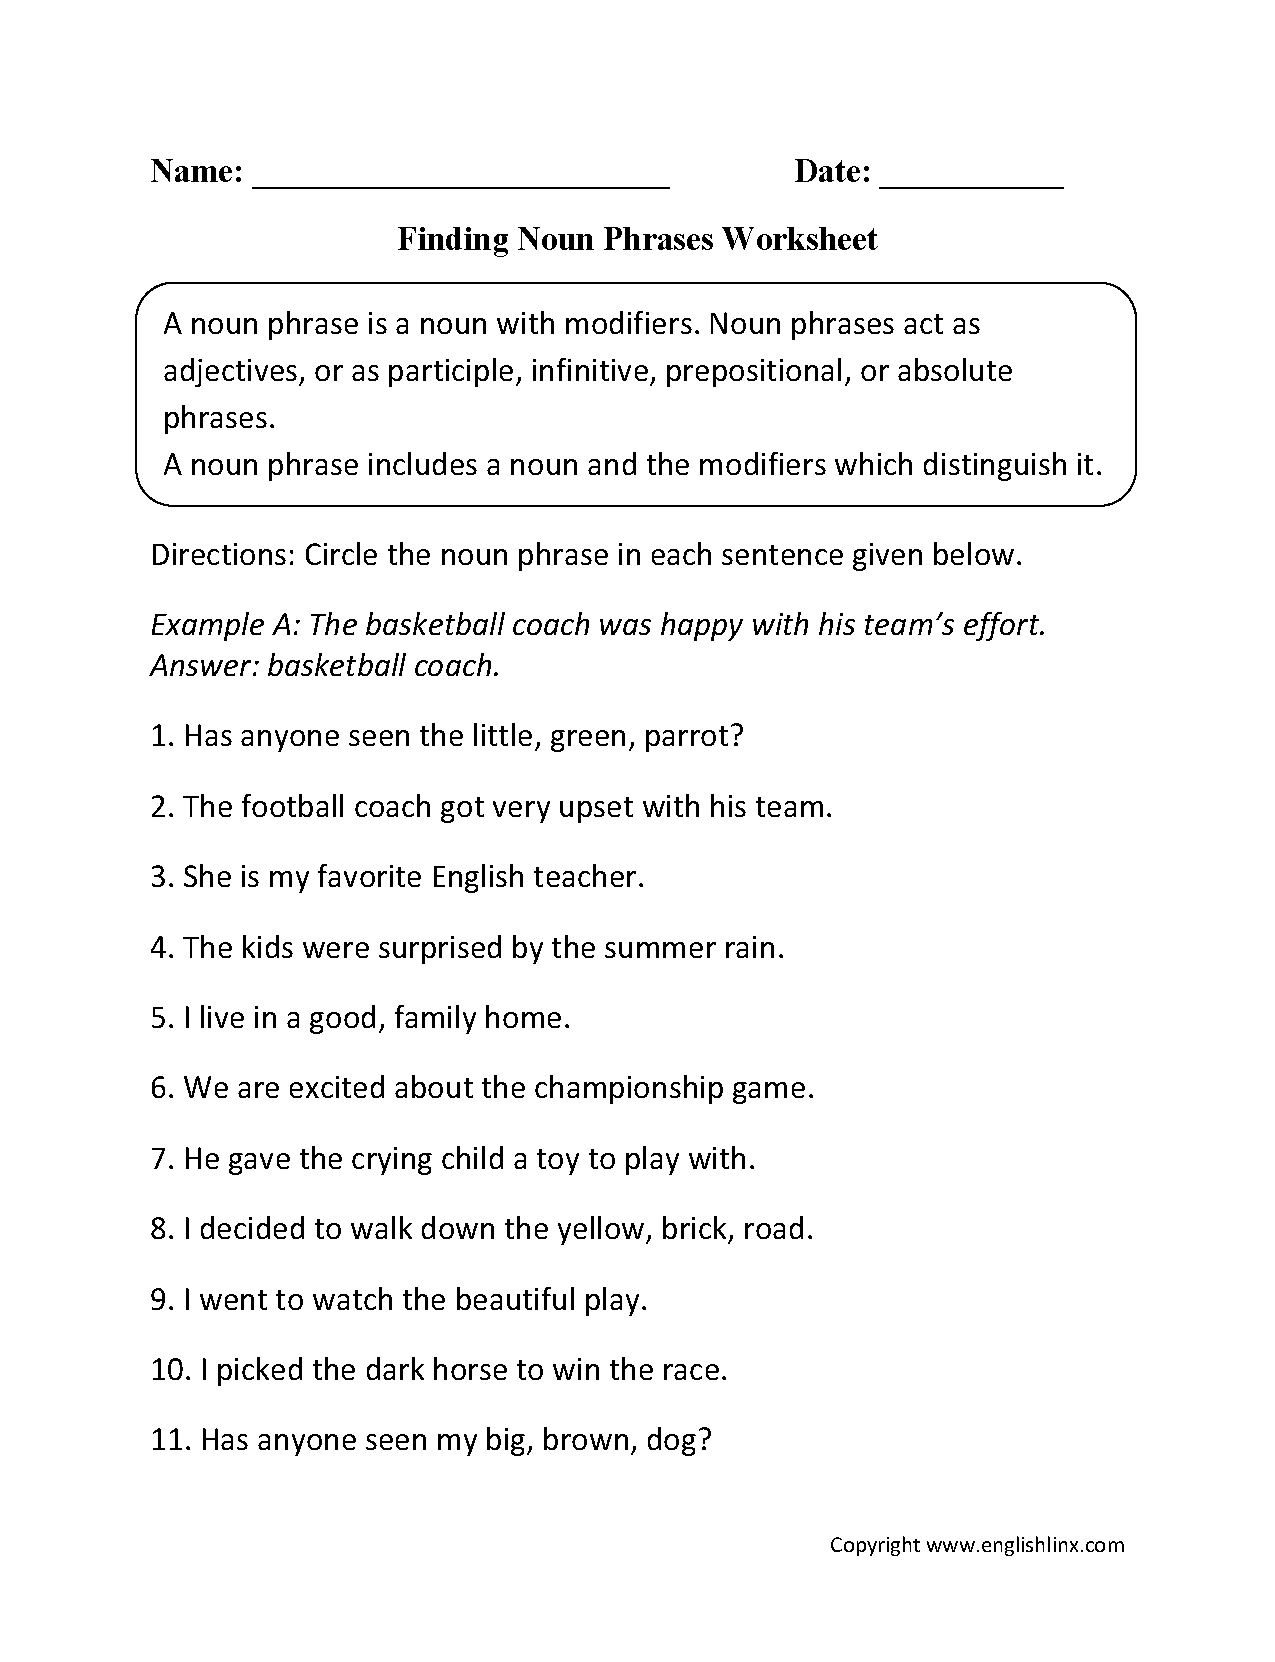 Printables Nouns Worksheet englishlinx com nouns worksheets noun phrases worksheets